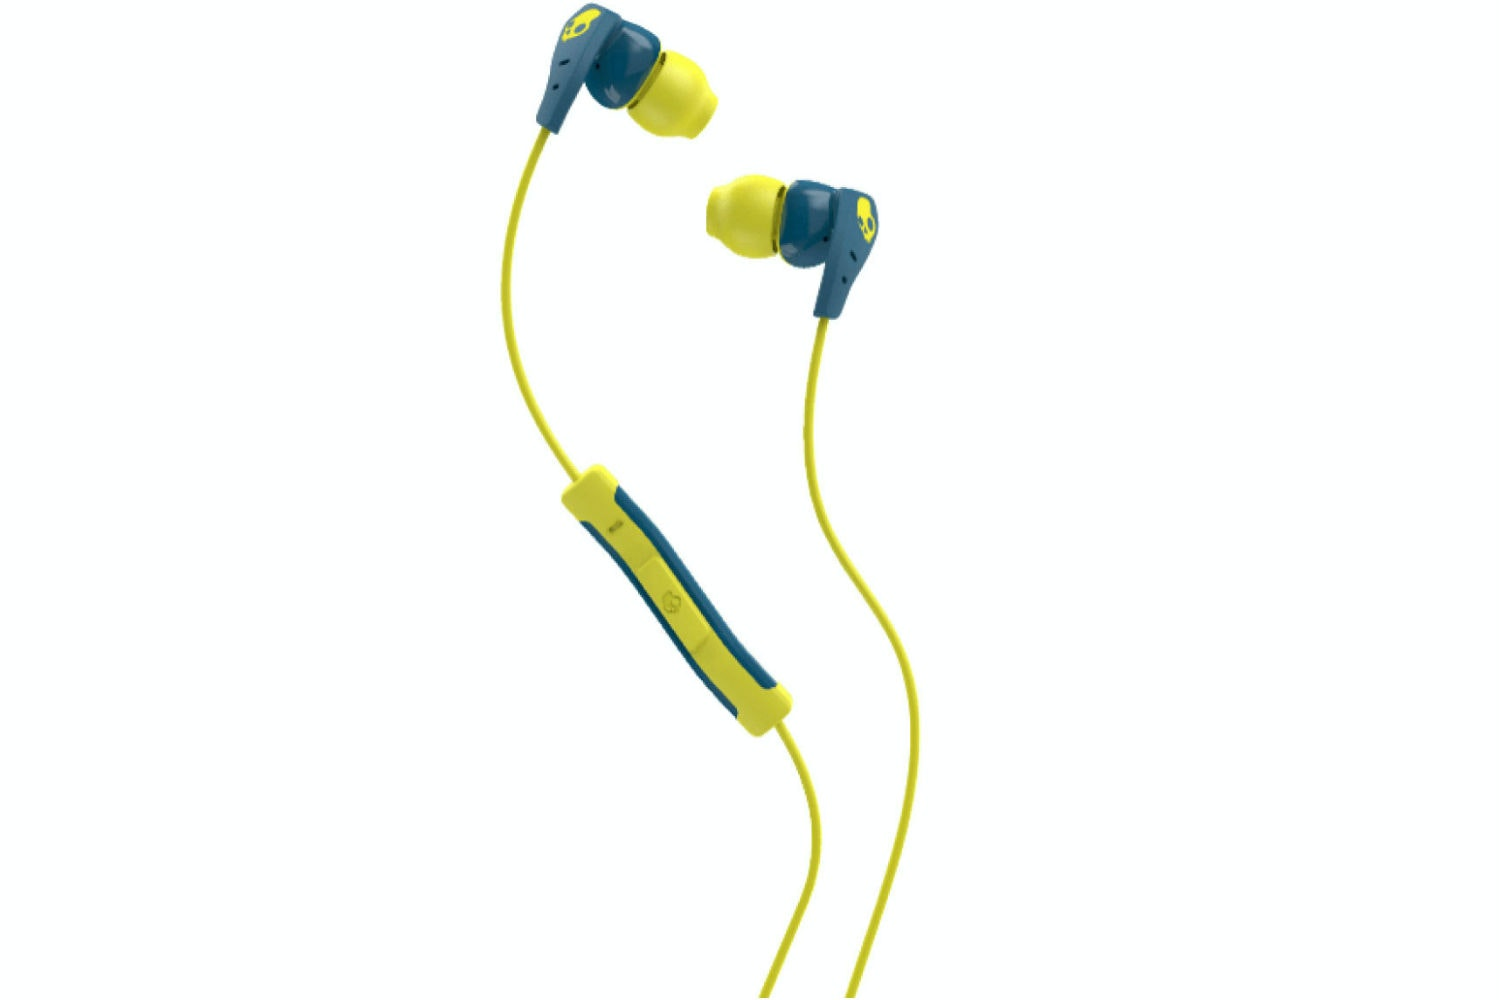 Skullcandy Ink'd 2.0 Earphones Teal & Acid